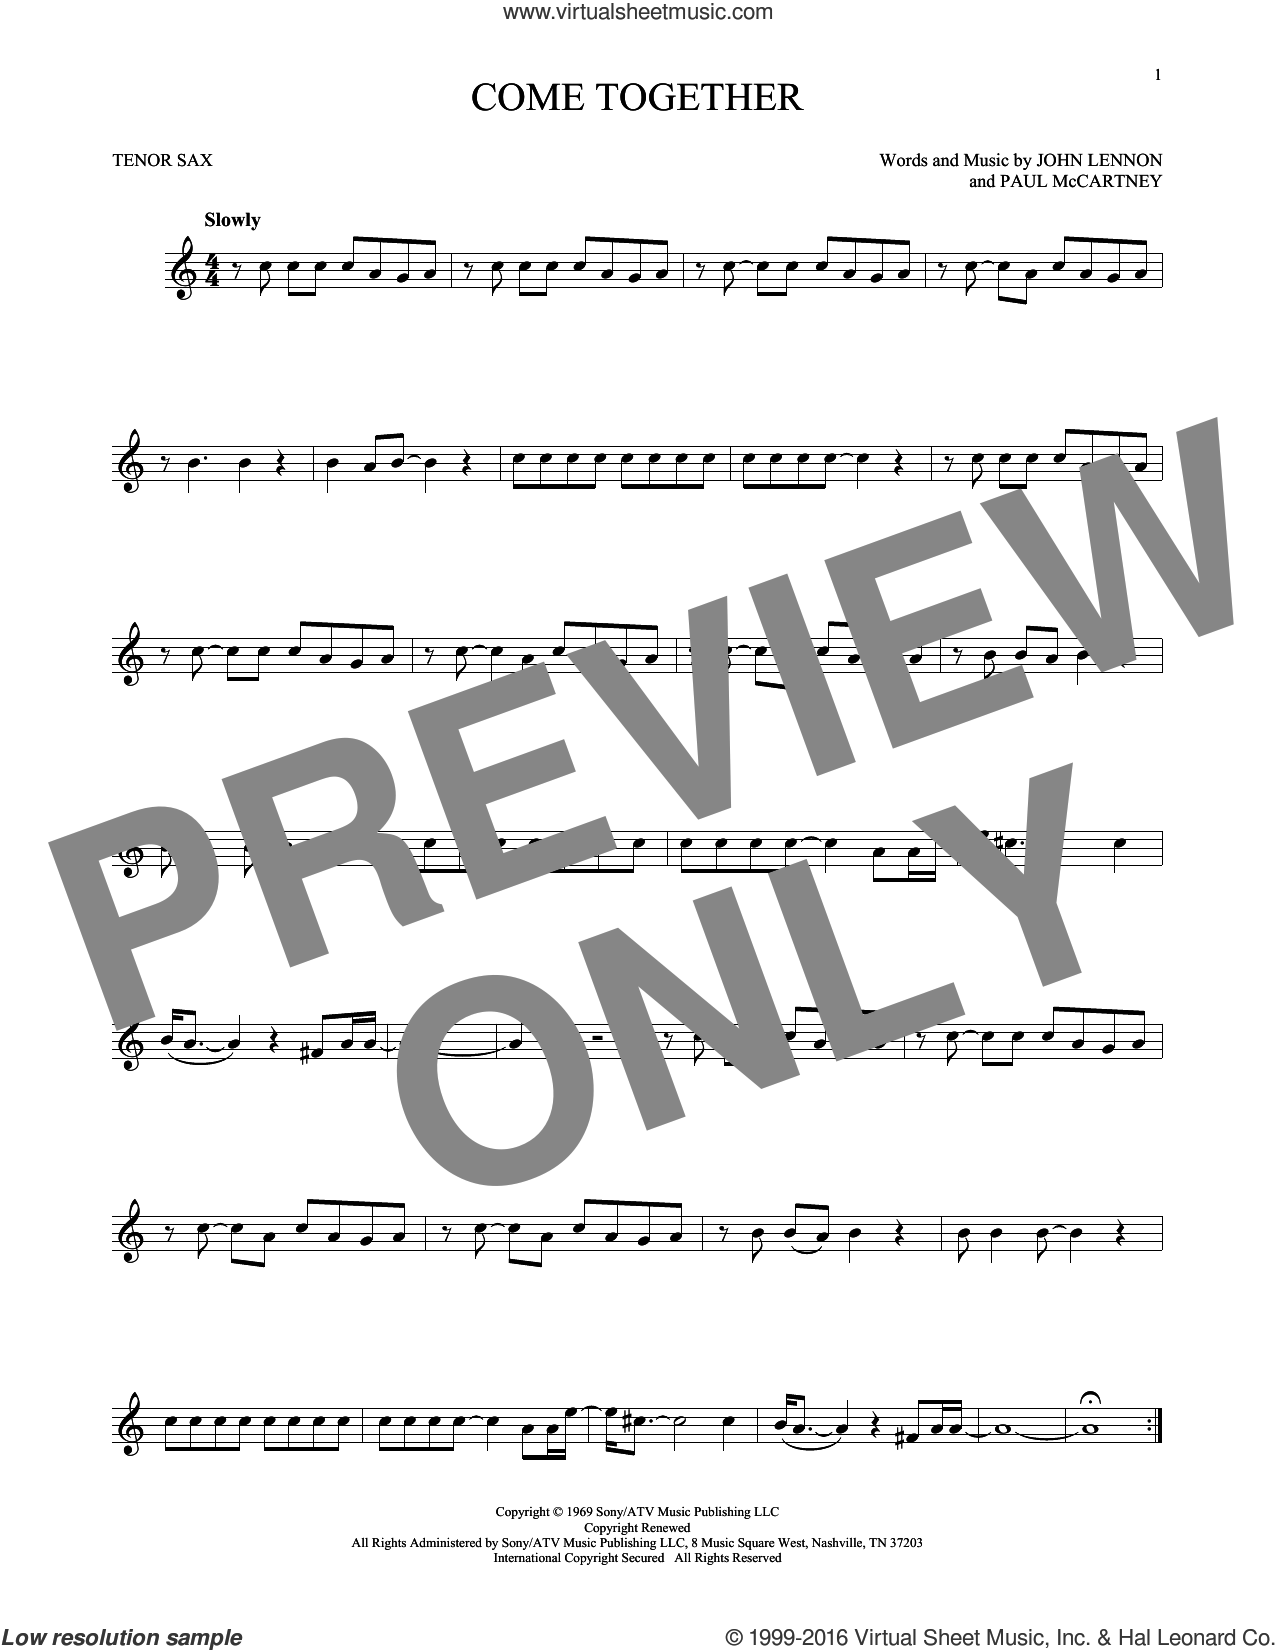 Come Together sheet music for tenor saxophone solo by Paul McCartney